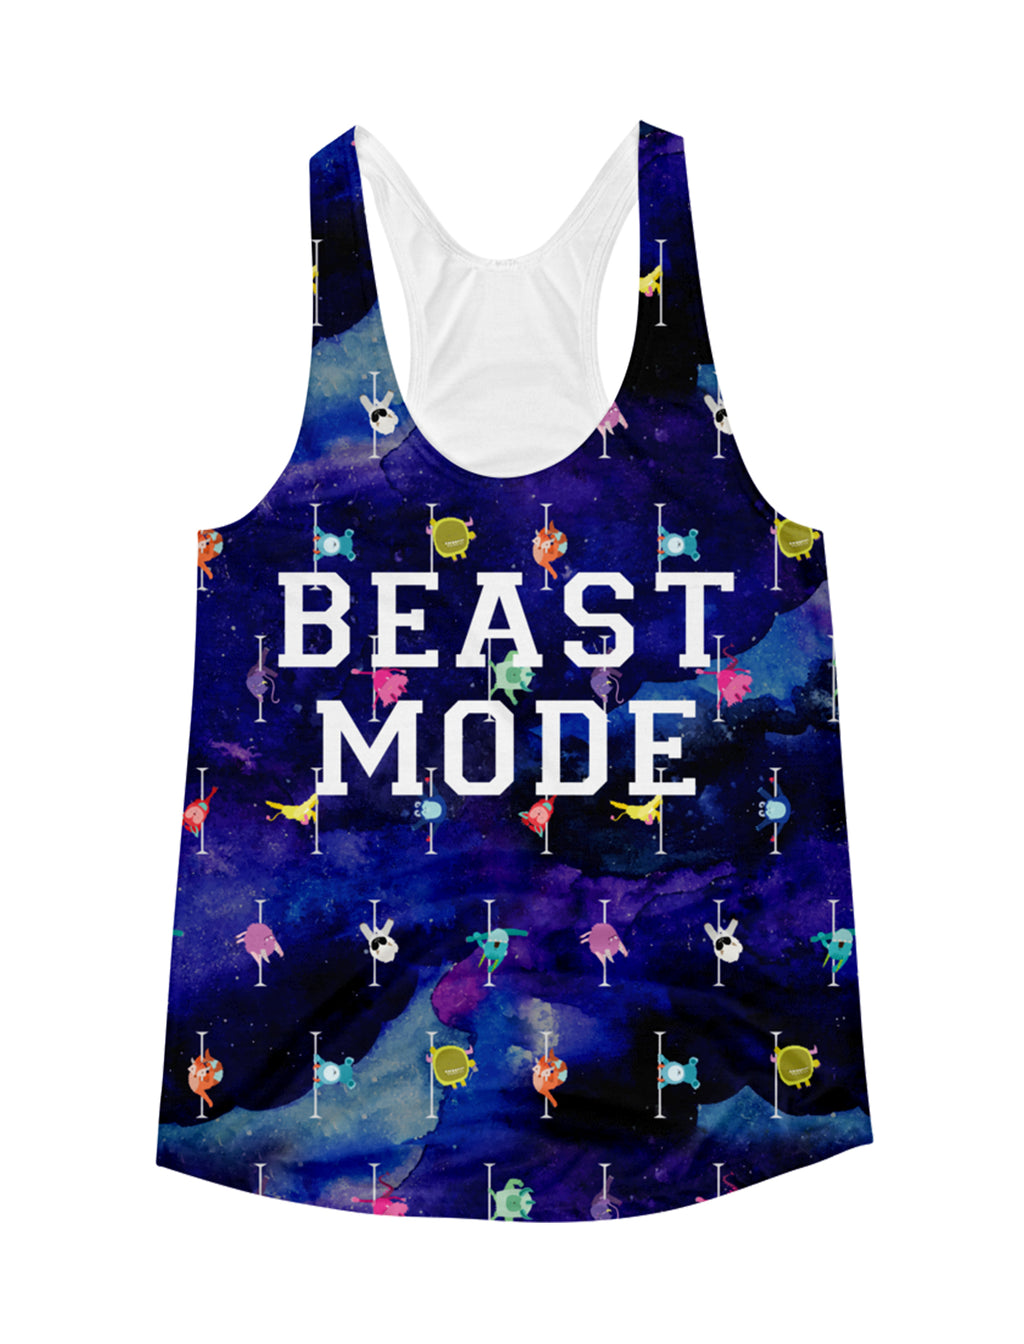 Team Beast Mode All-Over Print Racerback Tank Top